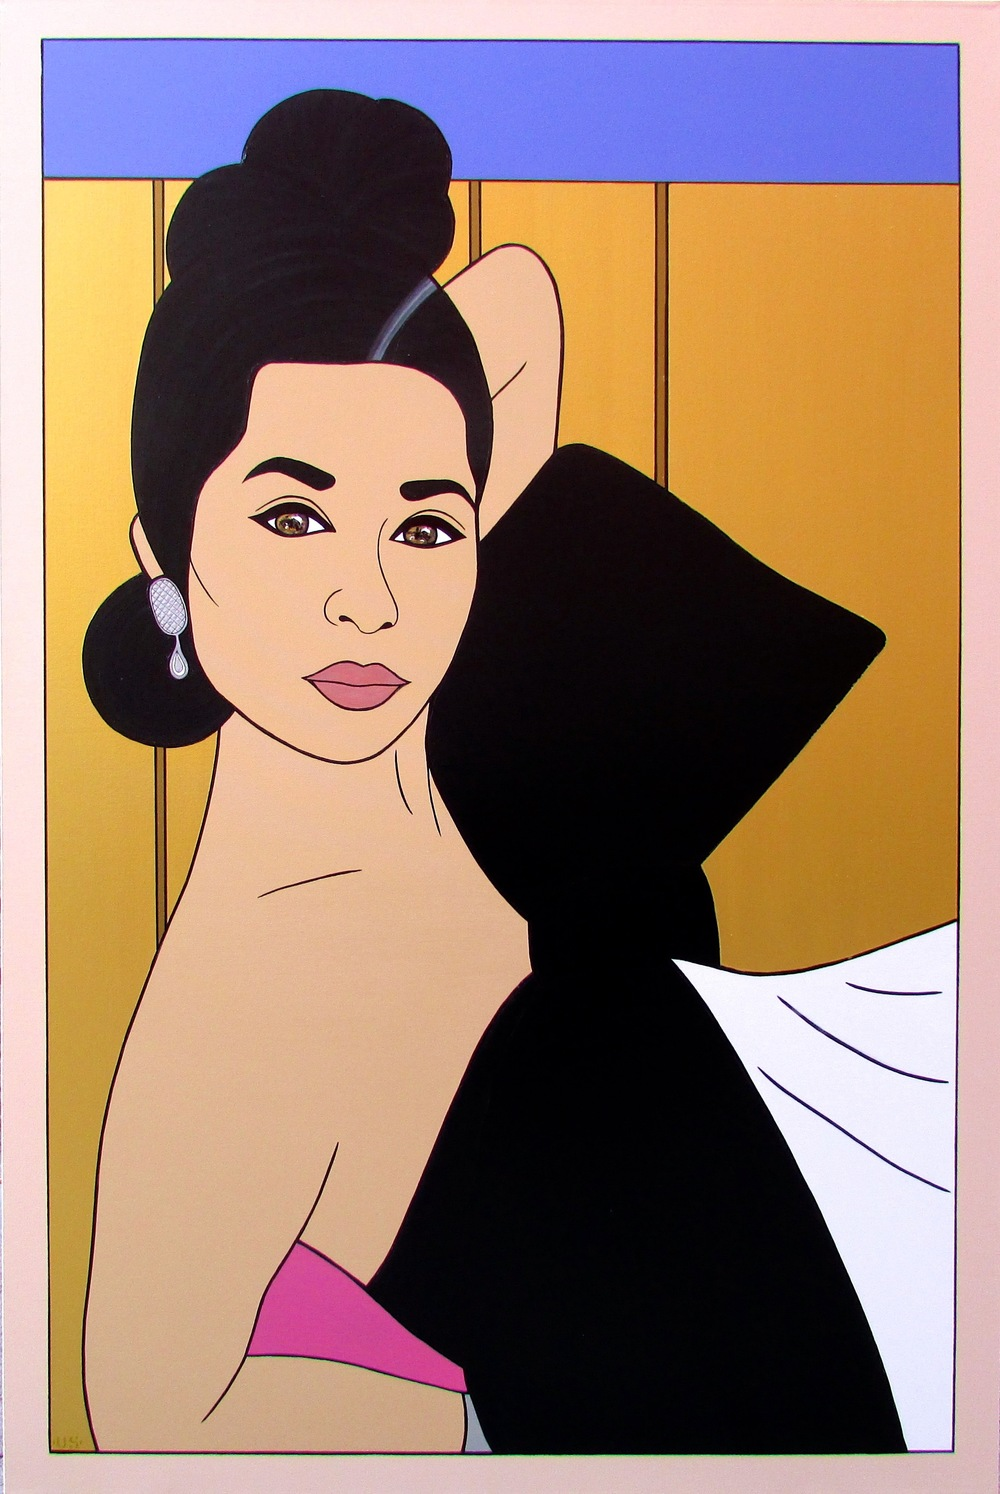 China Machado 1, 60 x 40 inches, Brand Us Art.jpg